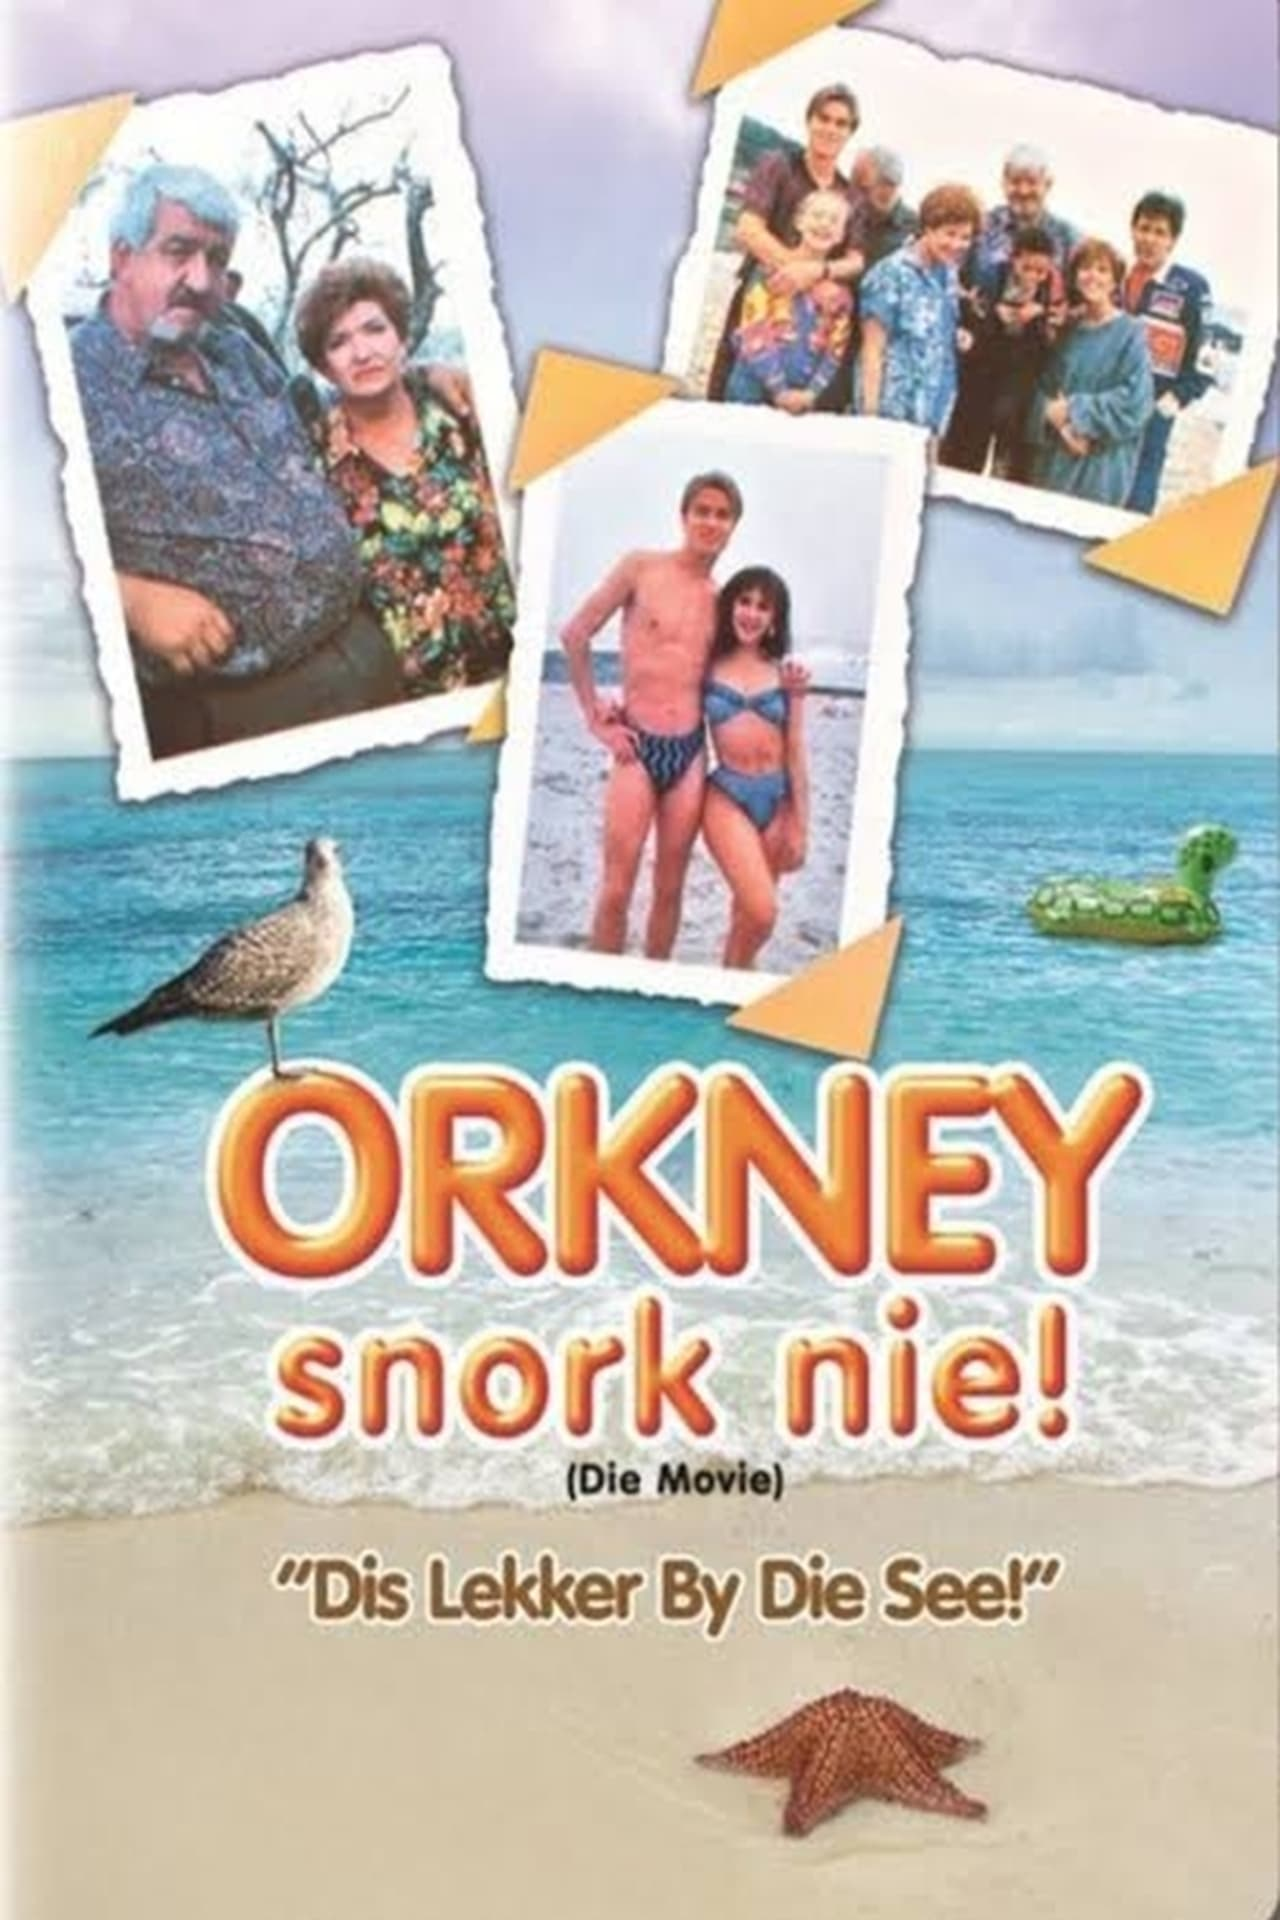 Orkney Snork Nie (Die Movie)